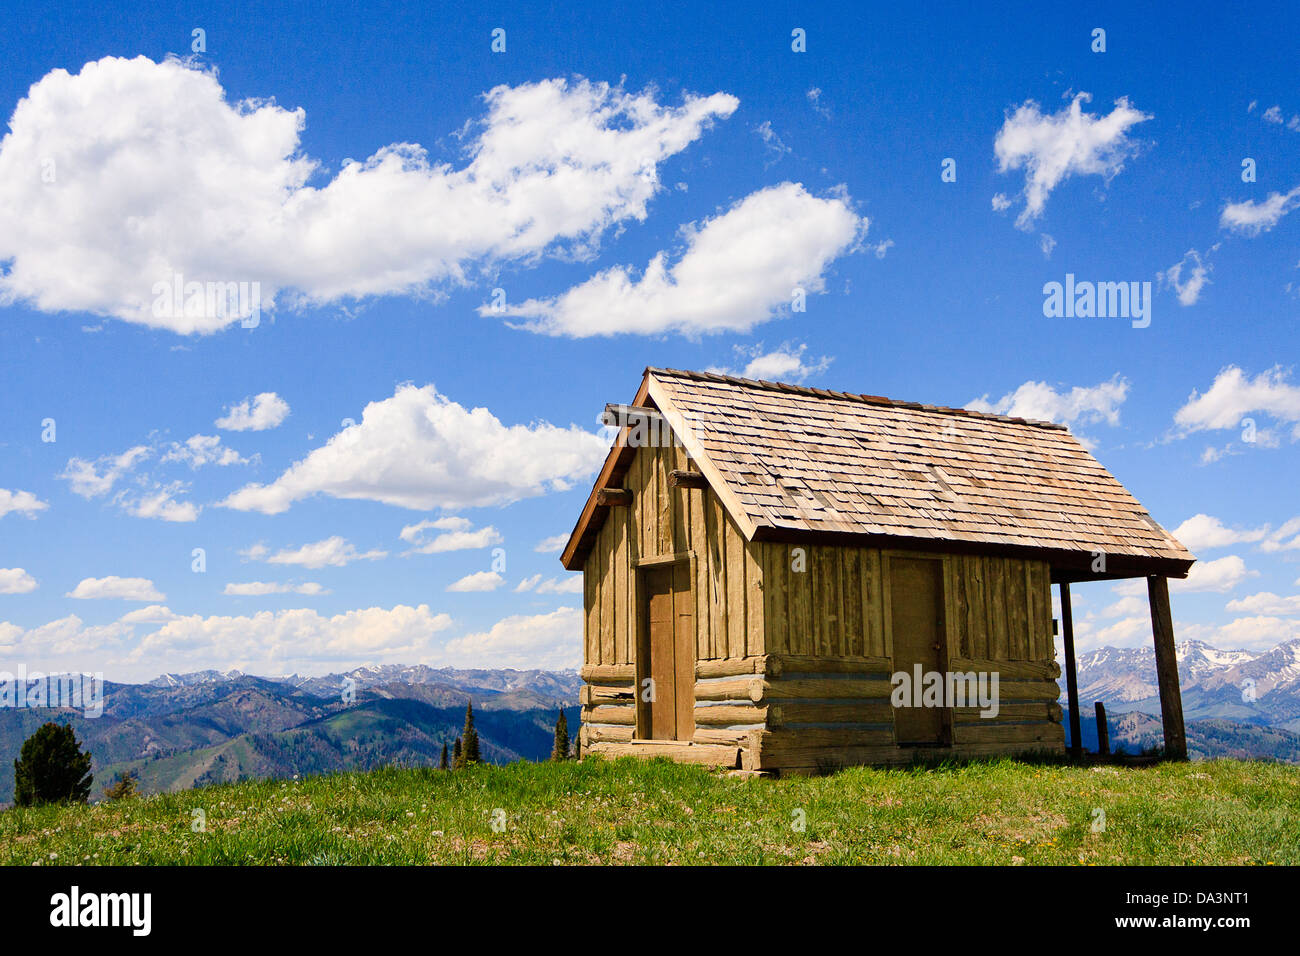 Small rustic log cabin at summit of Bald Mountain in Sun Valley, Idaho, on partly cloudy summer day - Stock Image